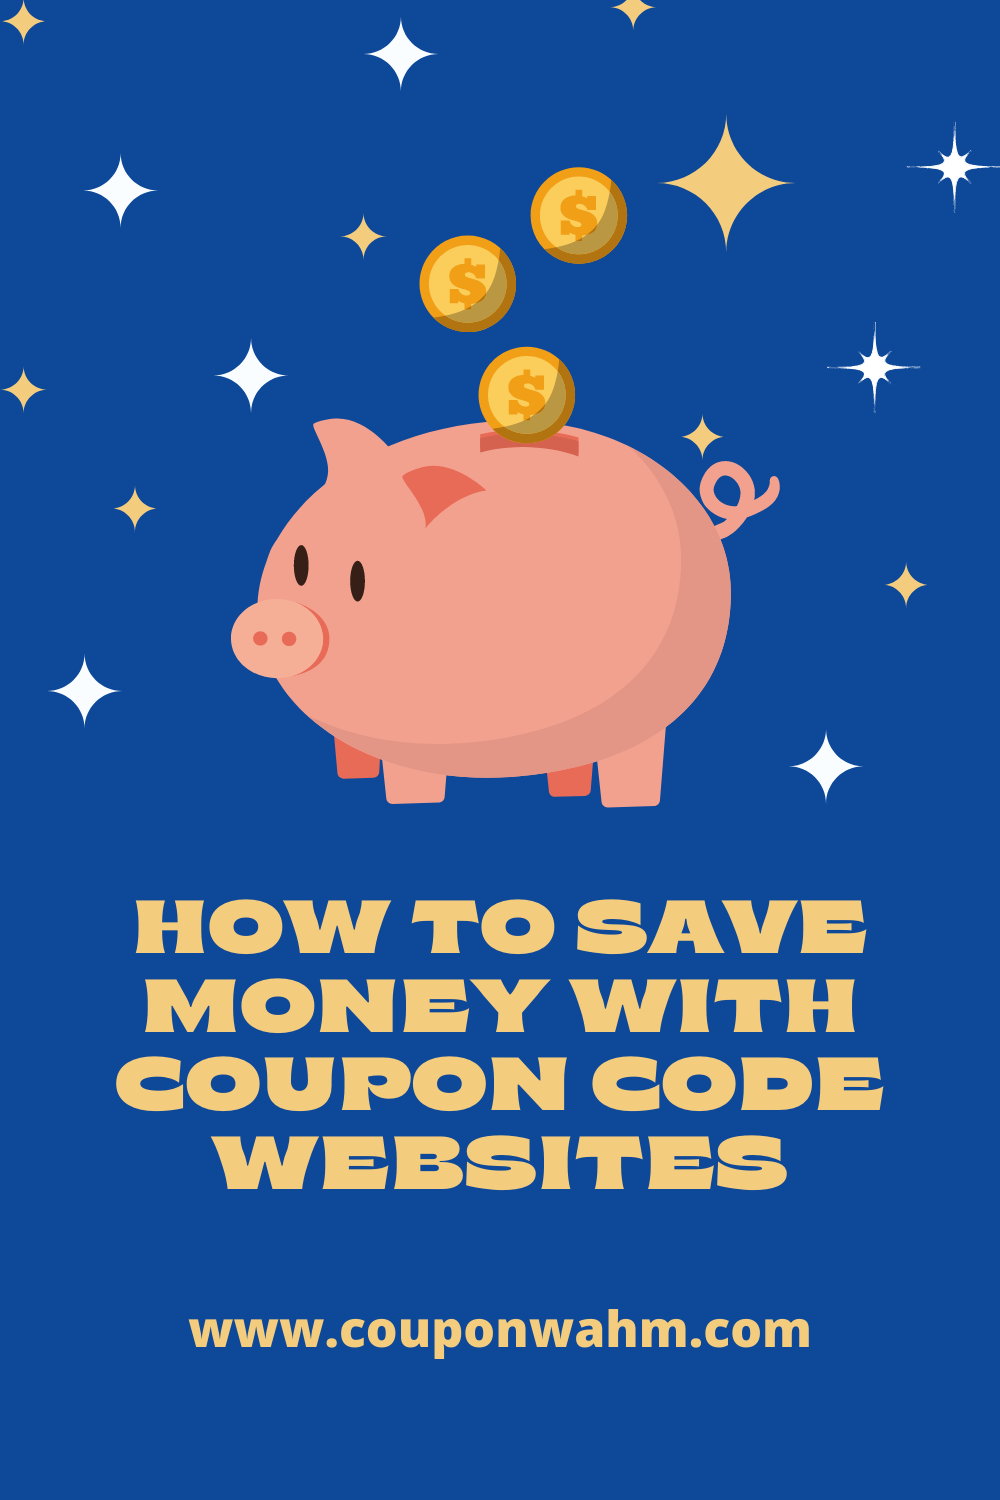 How To Save Money With Coupon Code Websites